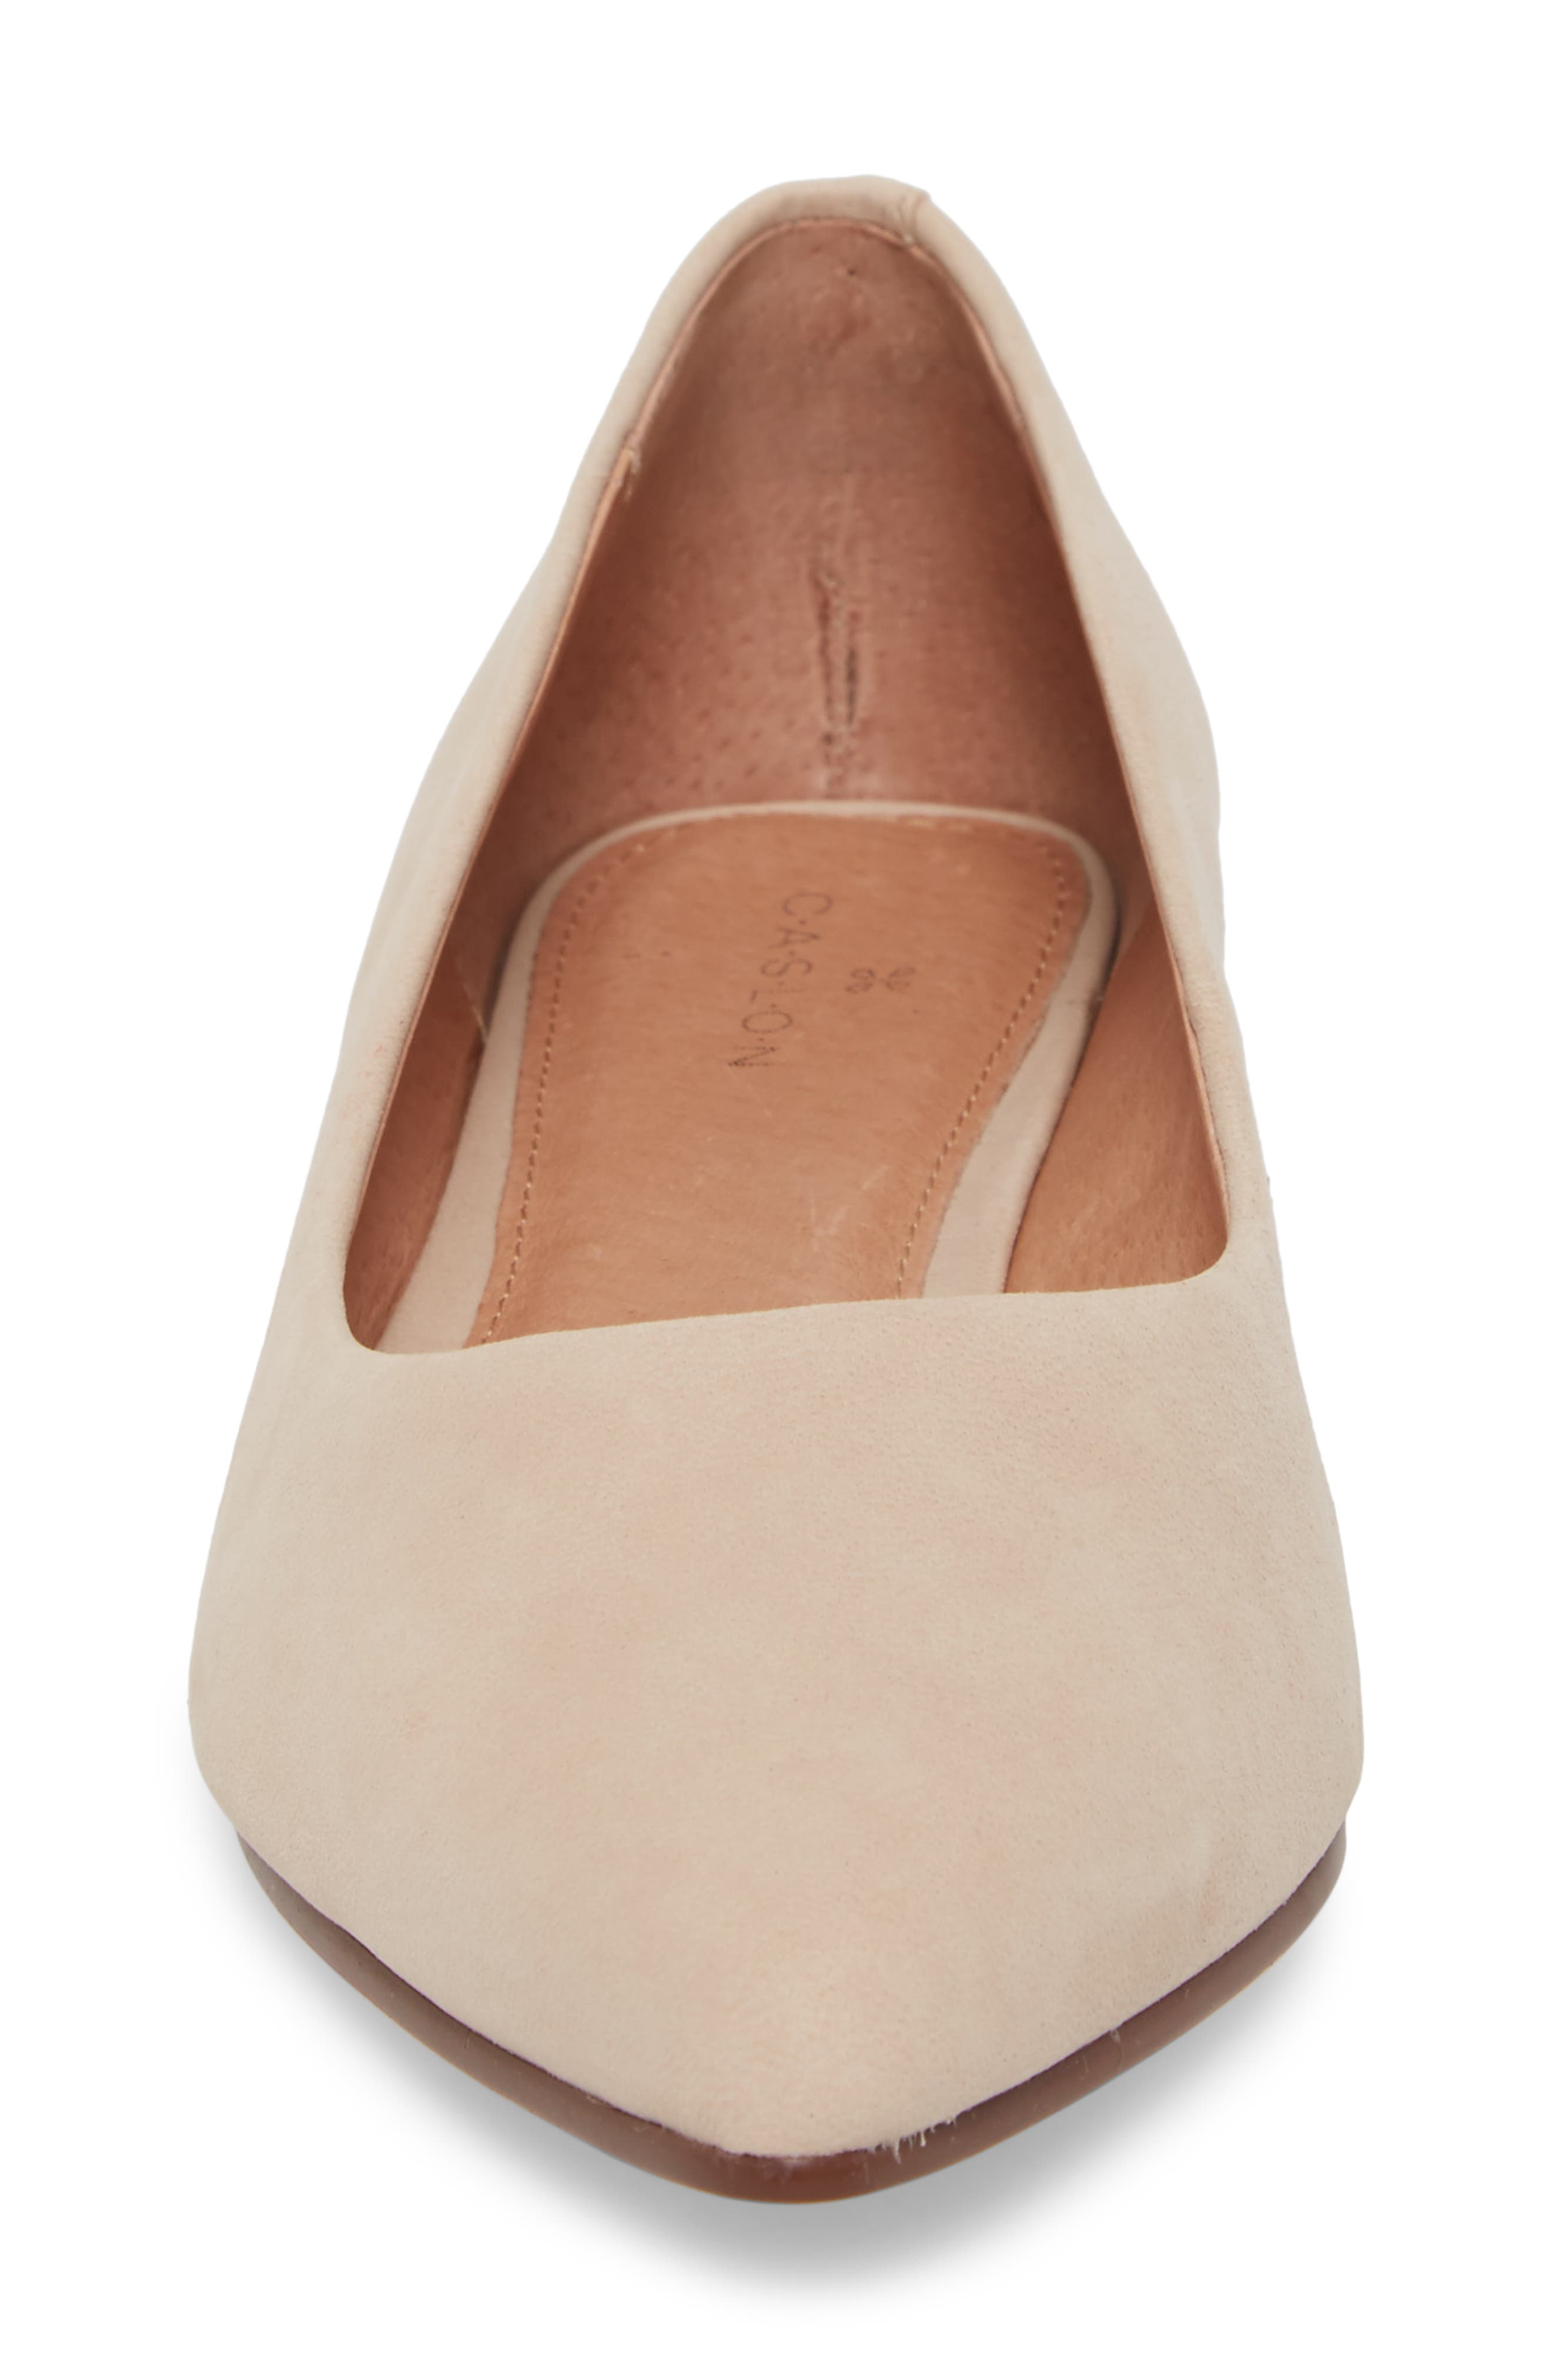 Luna Pointy Toe Flat,                             Alternate thumbnail 4, color,                             Nude Nubuck